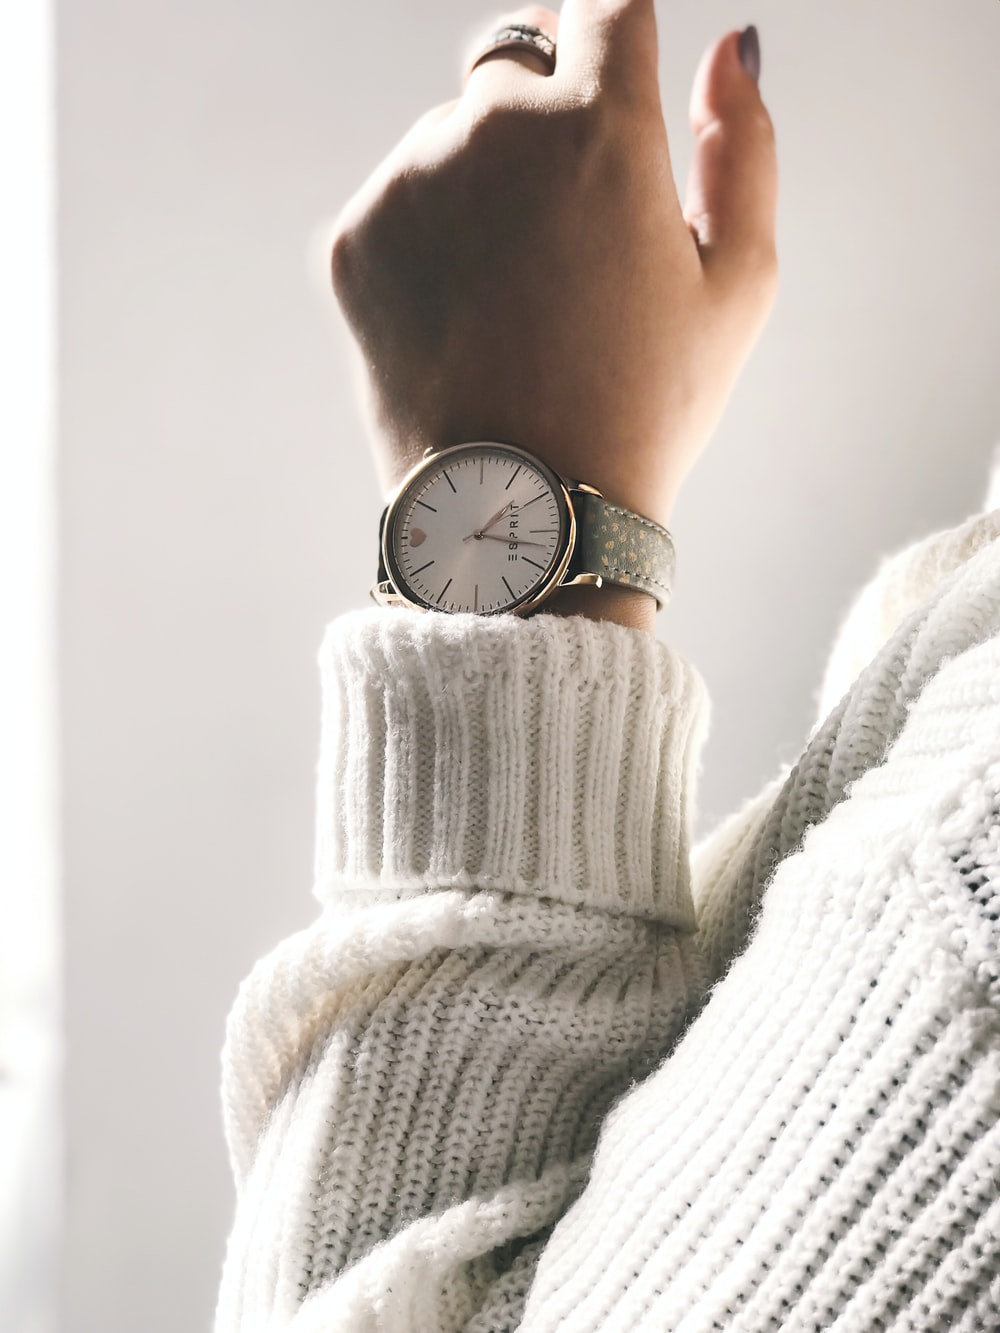 person wearing round silver-colored analog watch